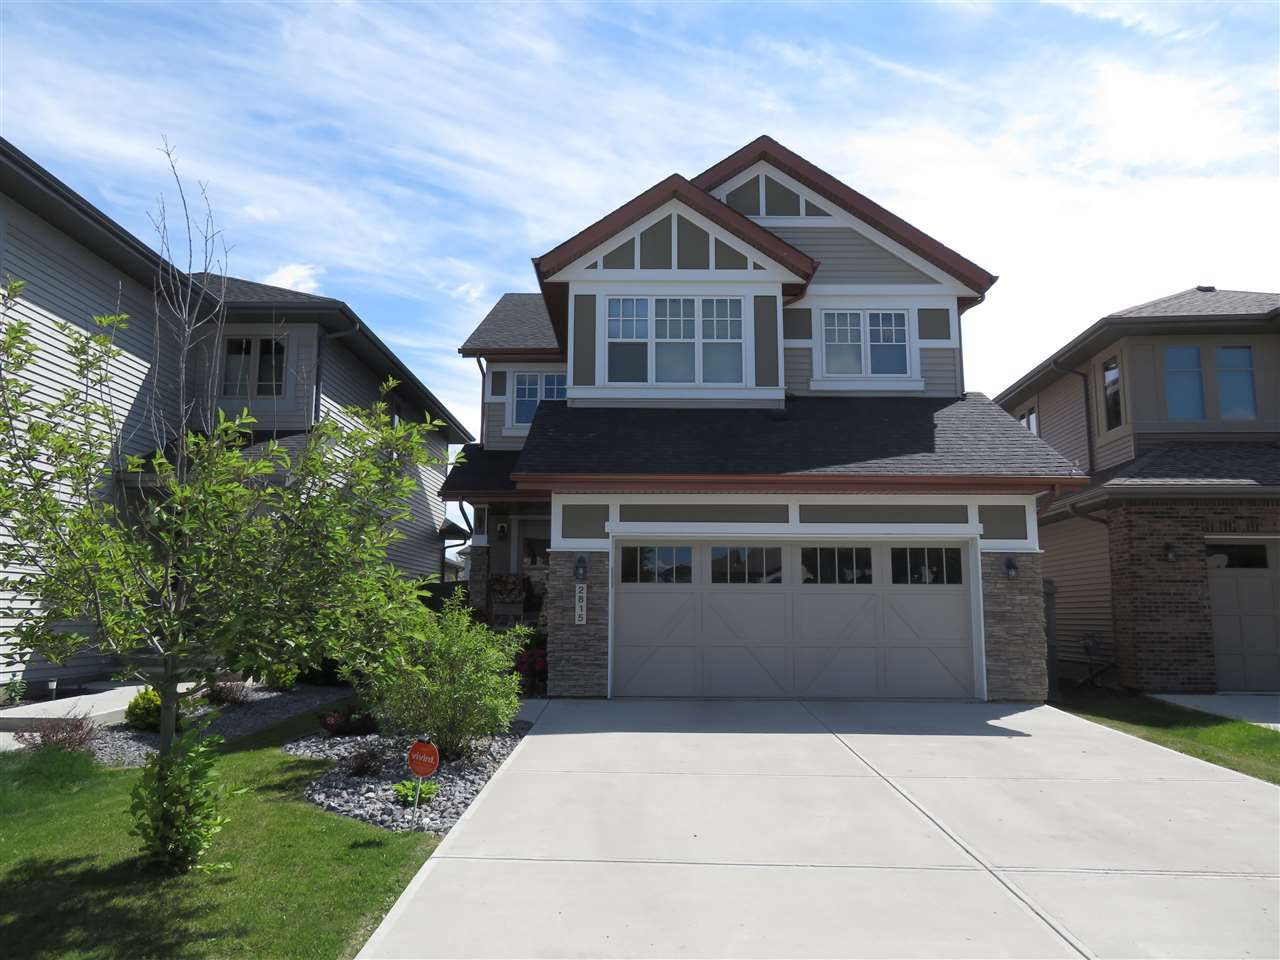 Main Photo: 2815 ANDERSON Place in Edmonton: Zone 56 House for sale : MLS®# E4141851